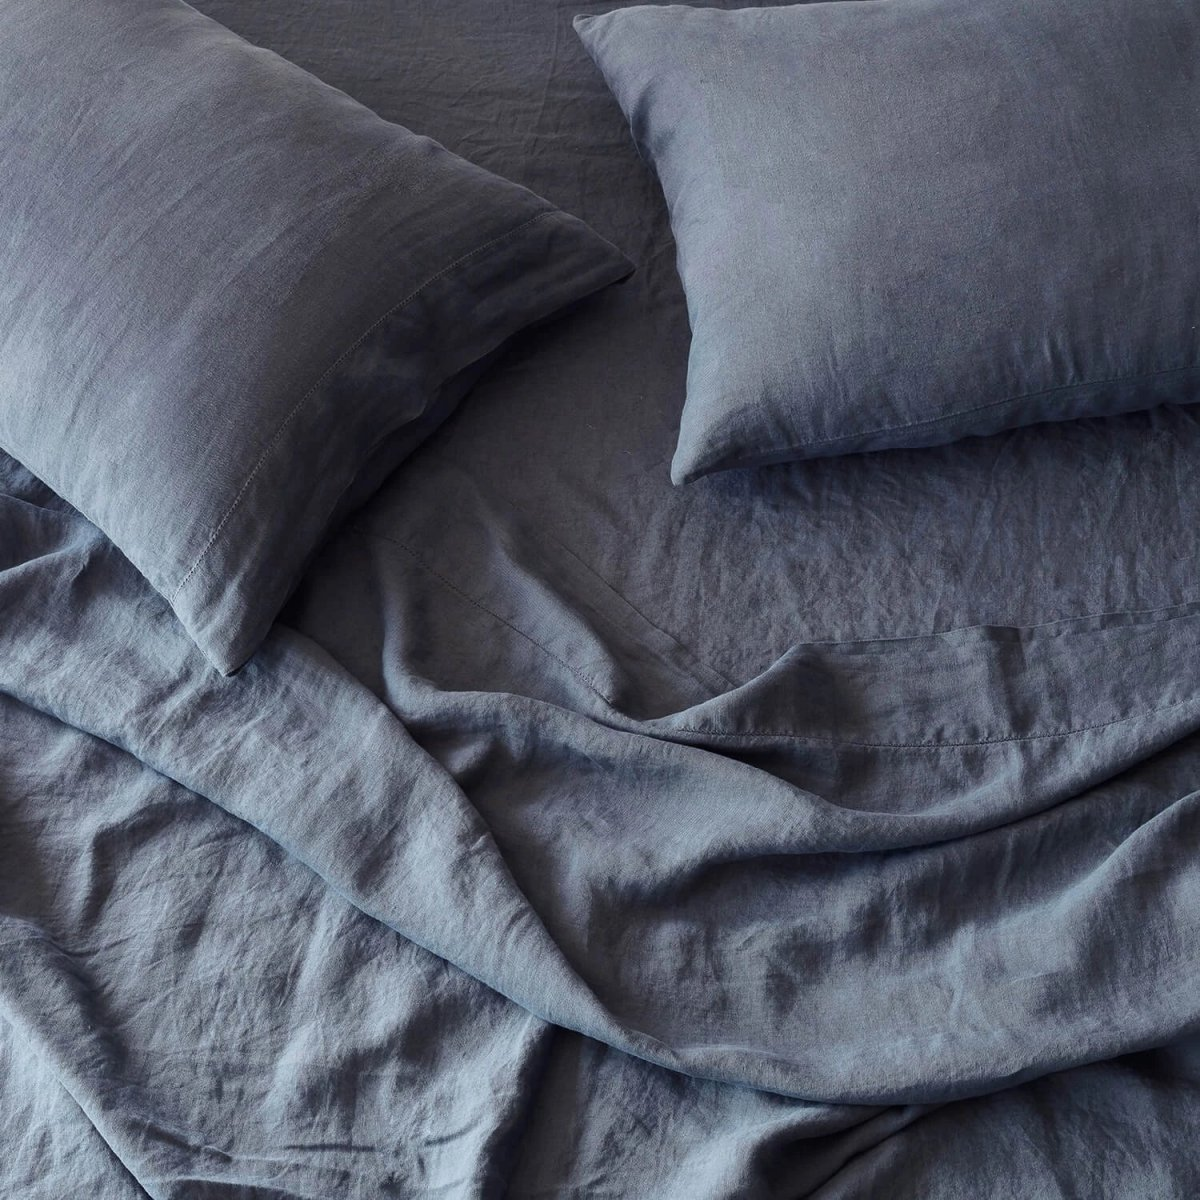 Stonewashed Linen Bed Bundle, slate blue.